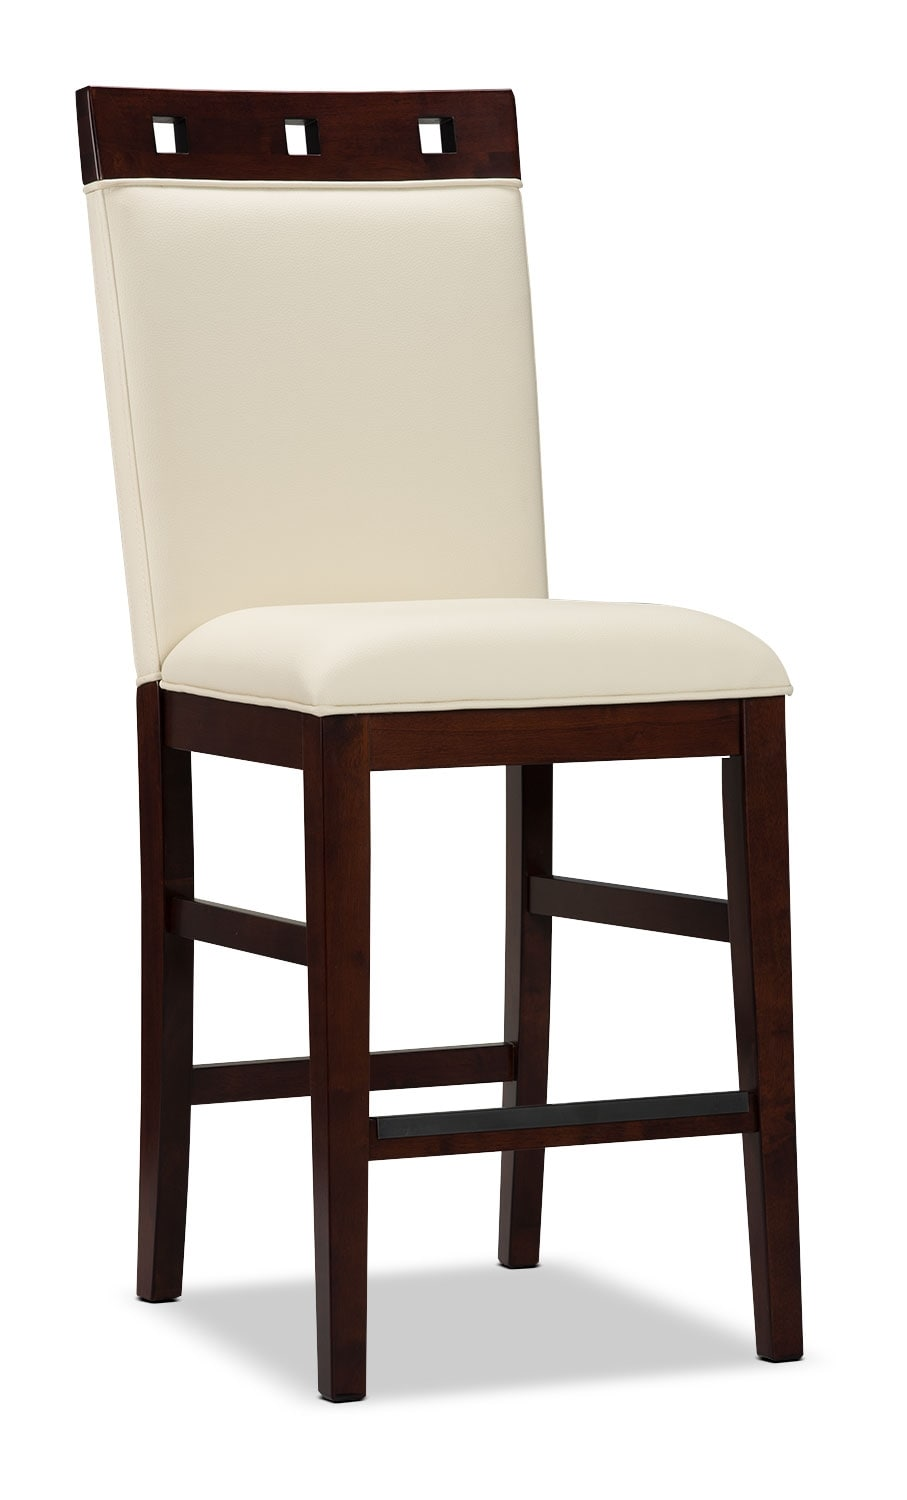 Zeno Counter-Height Dining Chair – Wood Top